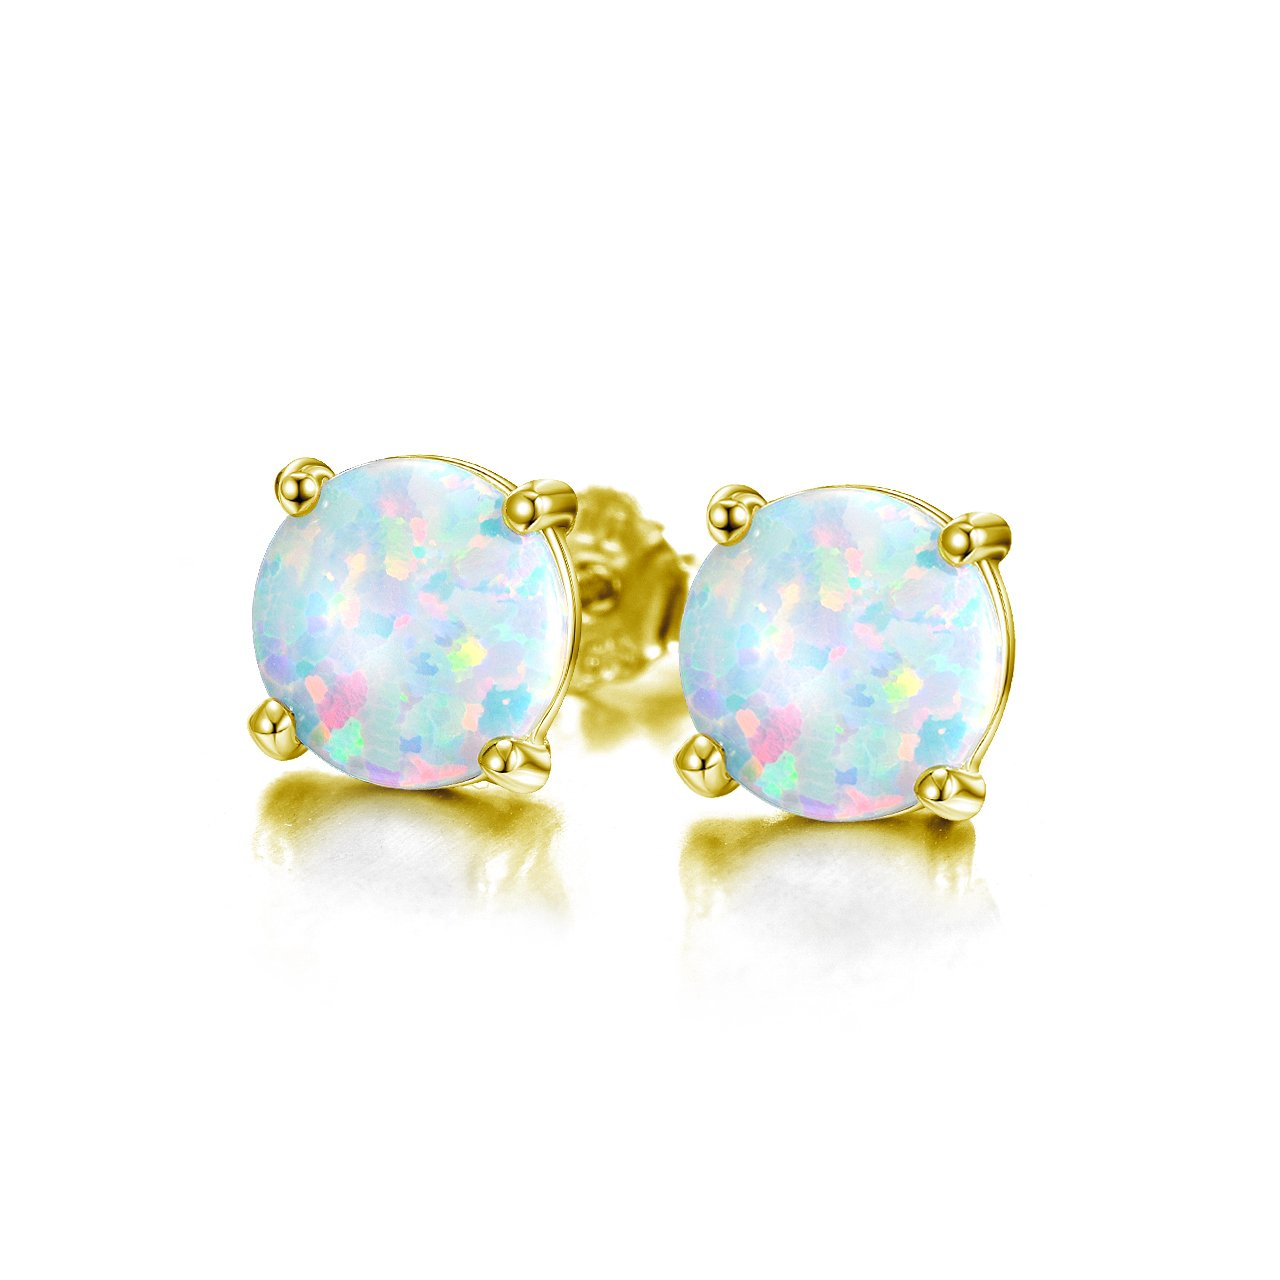 b3e43cf396353 Sterling Silver Stud Earrings - Round Created Opal Studs (6mm)